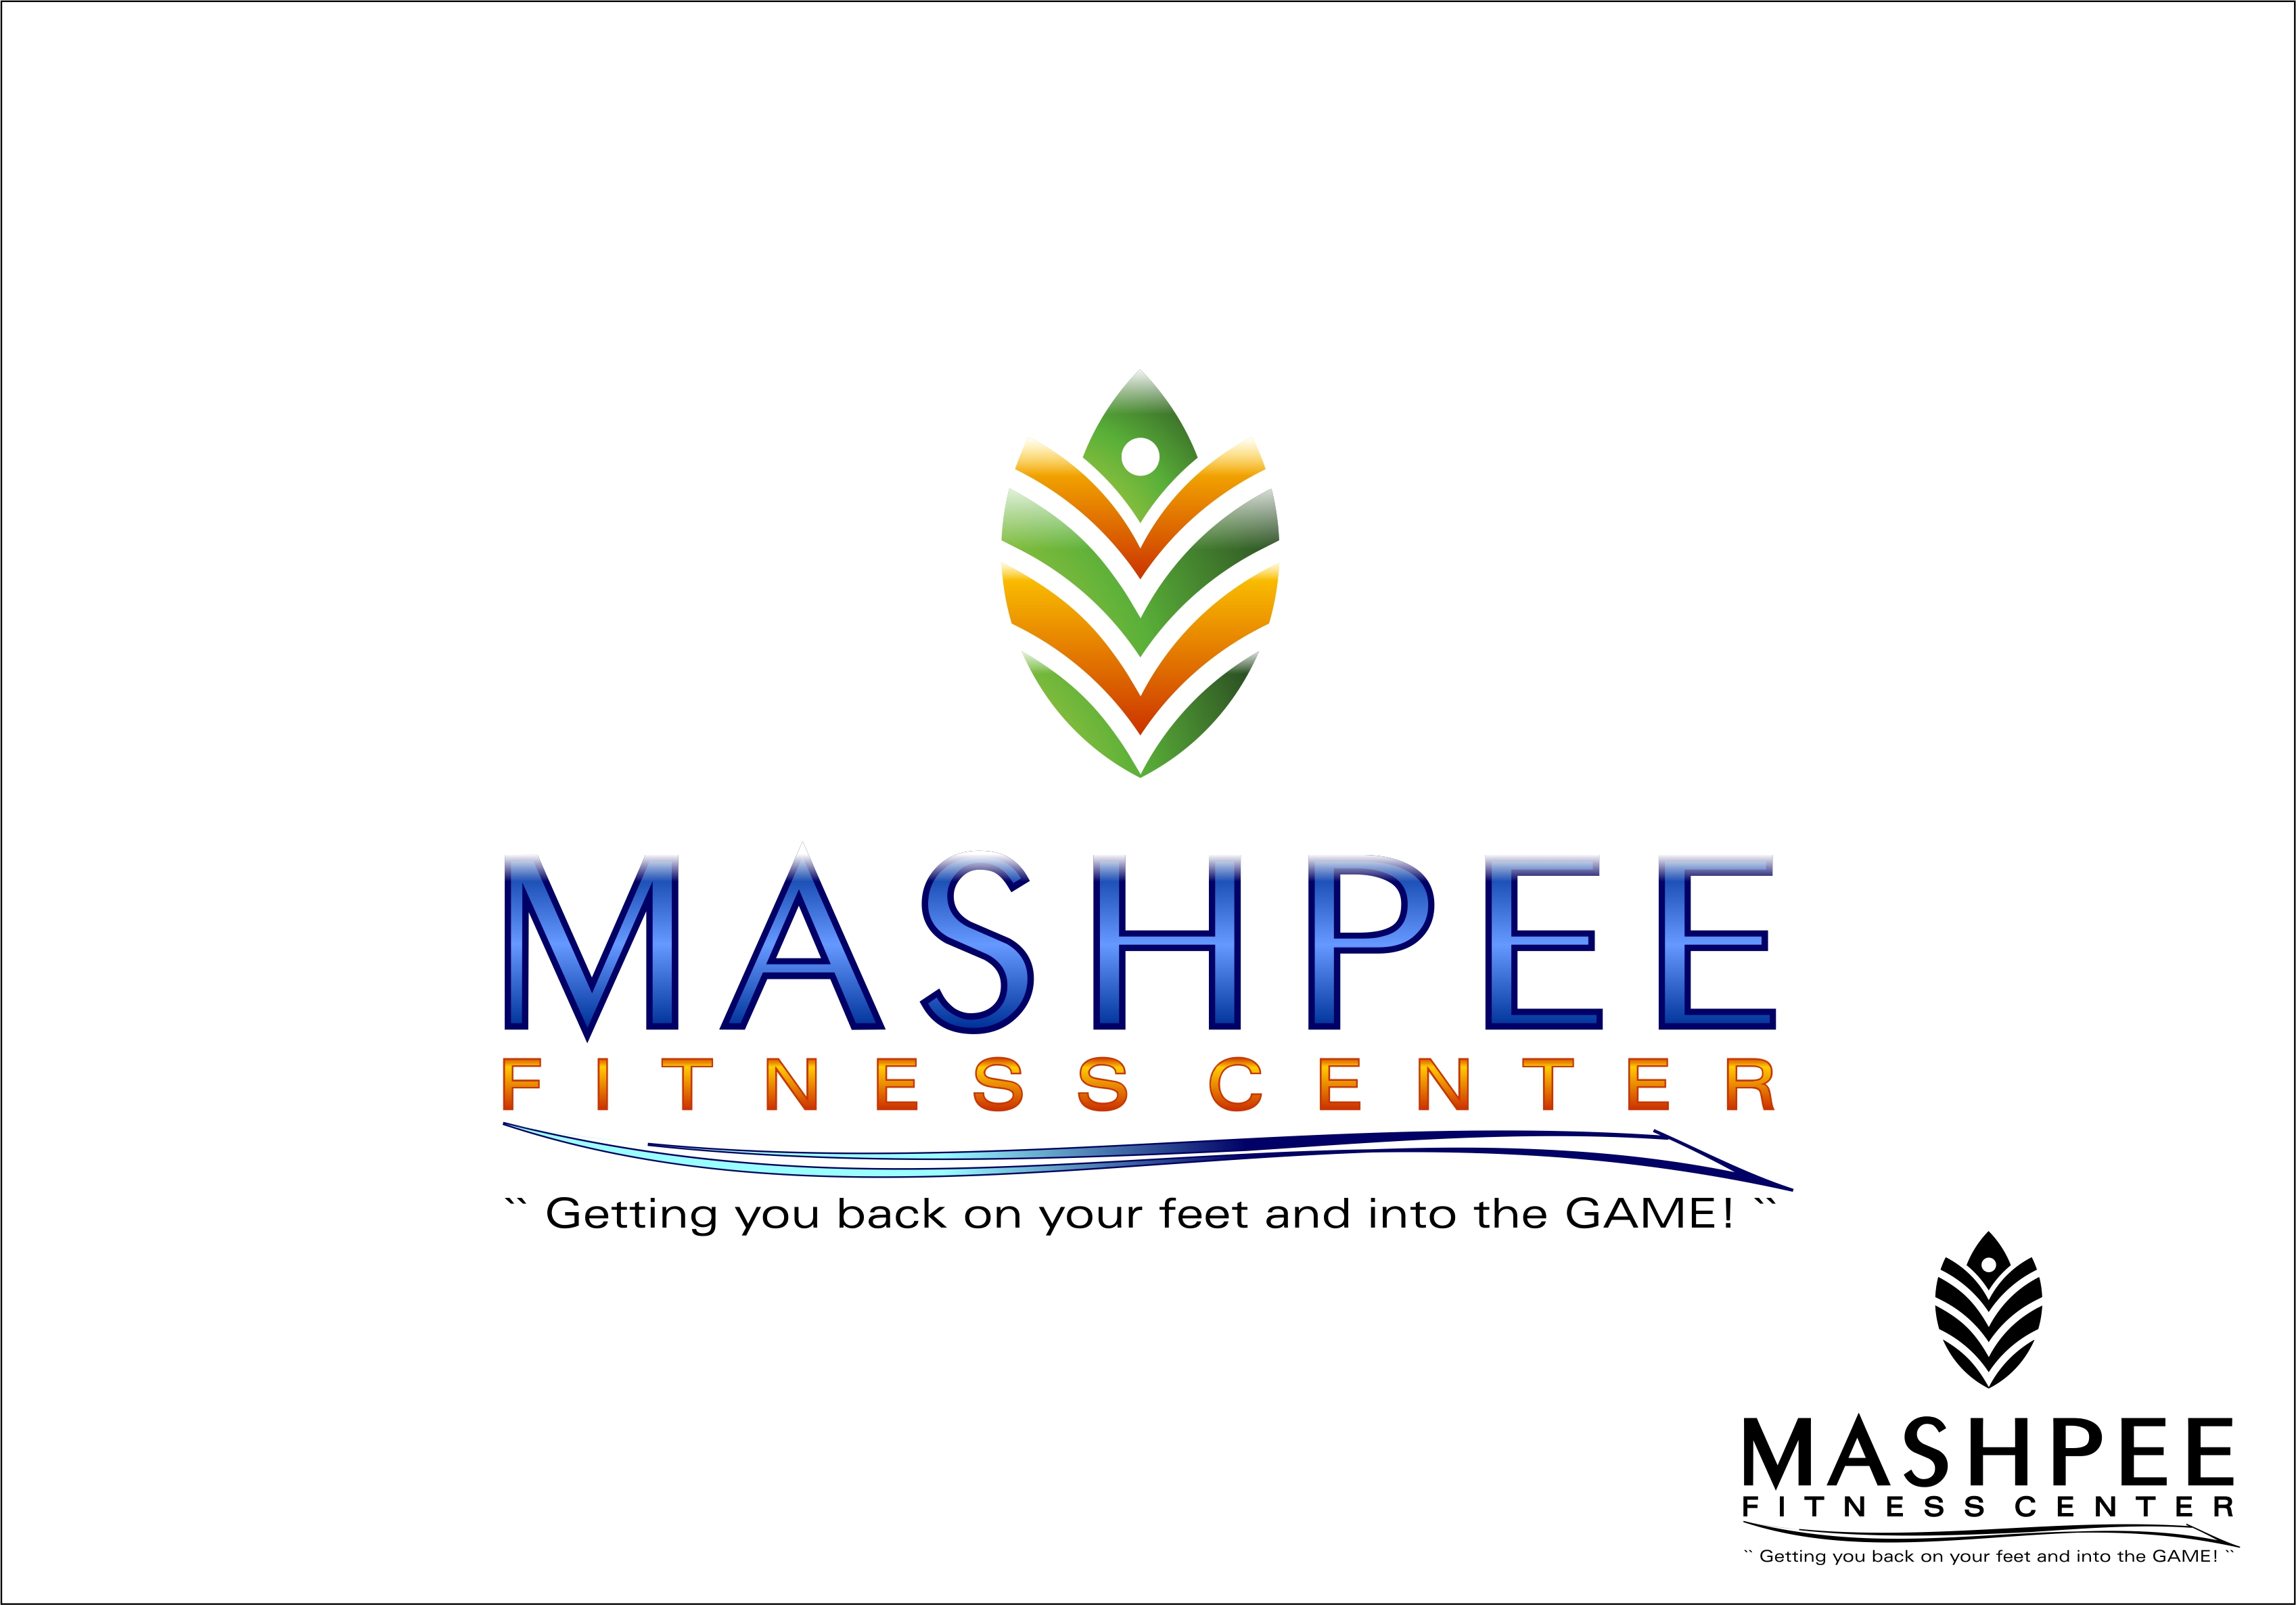 Logo Design by Fatih Ercan - Entry No. 97 in the Logo Design Contest New Logo Design for Mashpee Fitness Center.